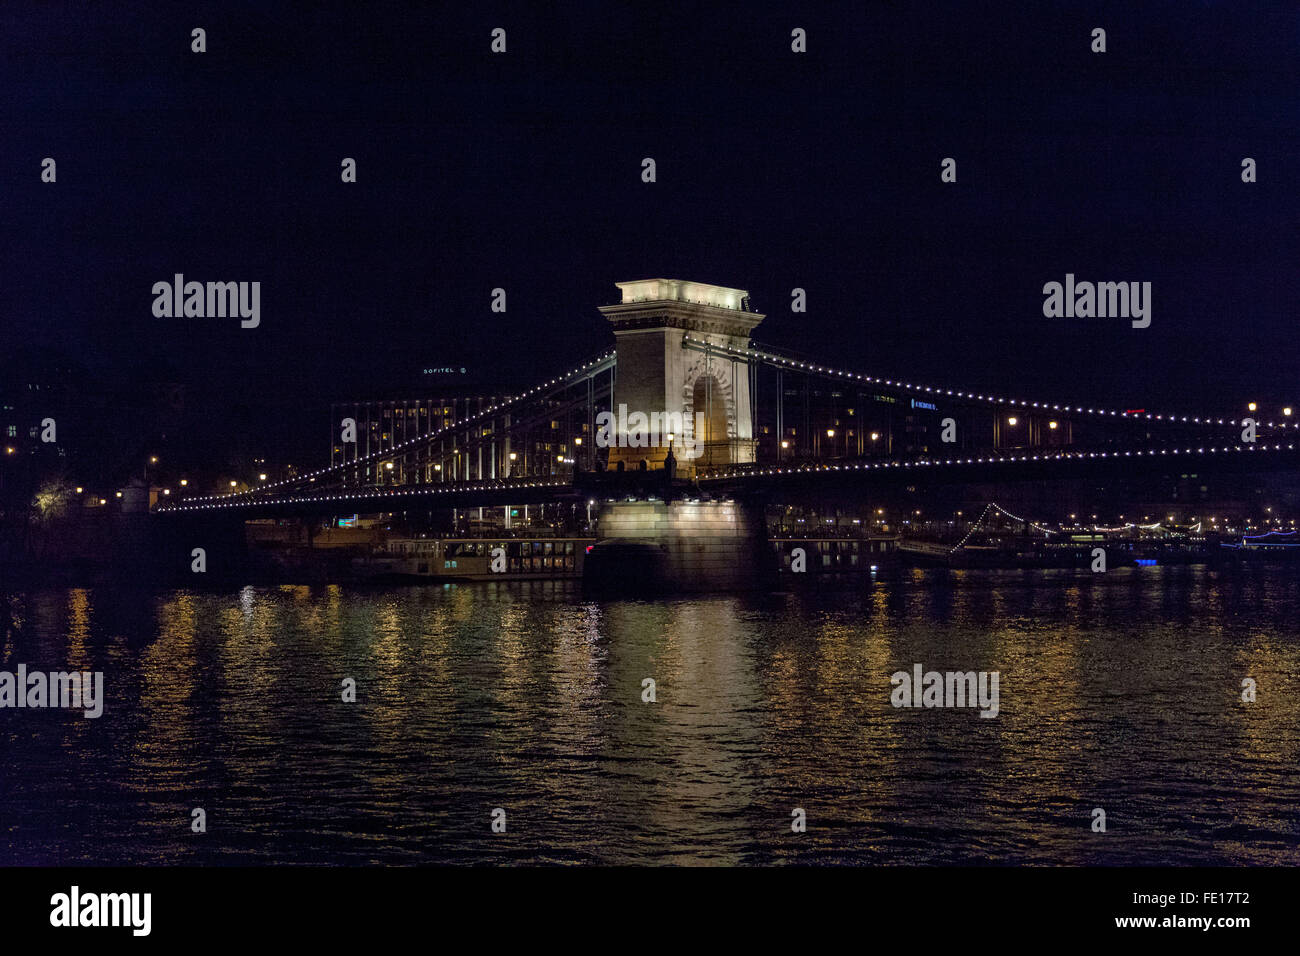 Chain Bridge over the Danube River Budapest Hungary, at night with the sparkling lights reflecting in the river - Stock Image